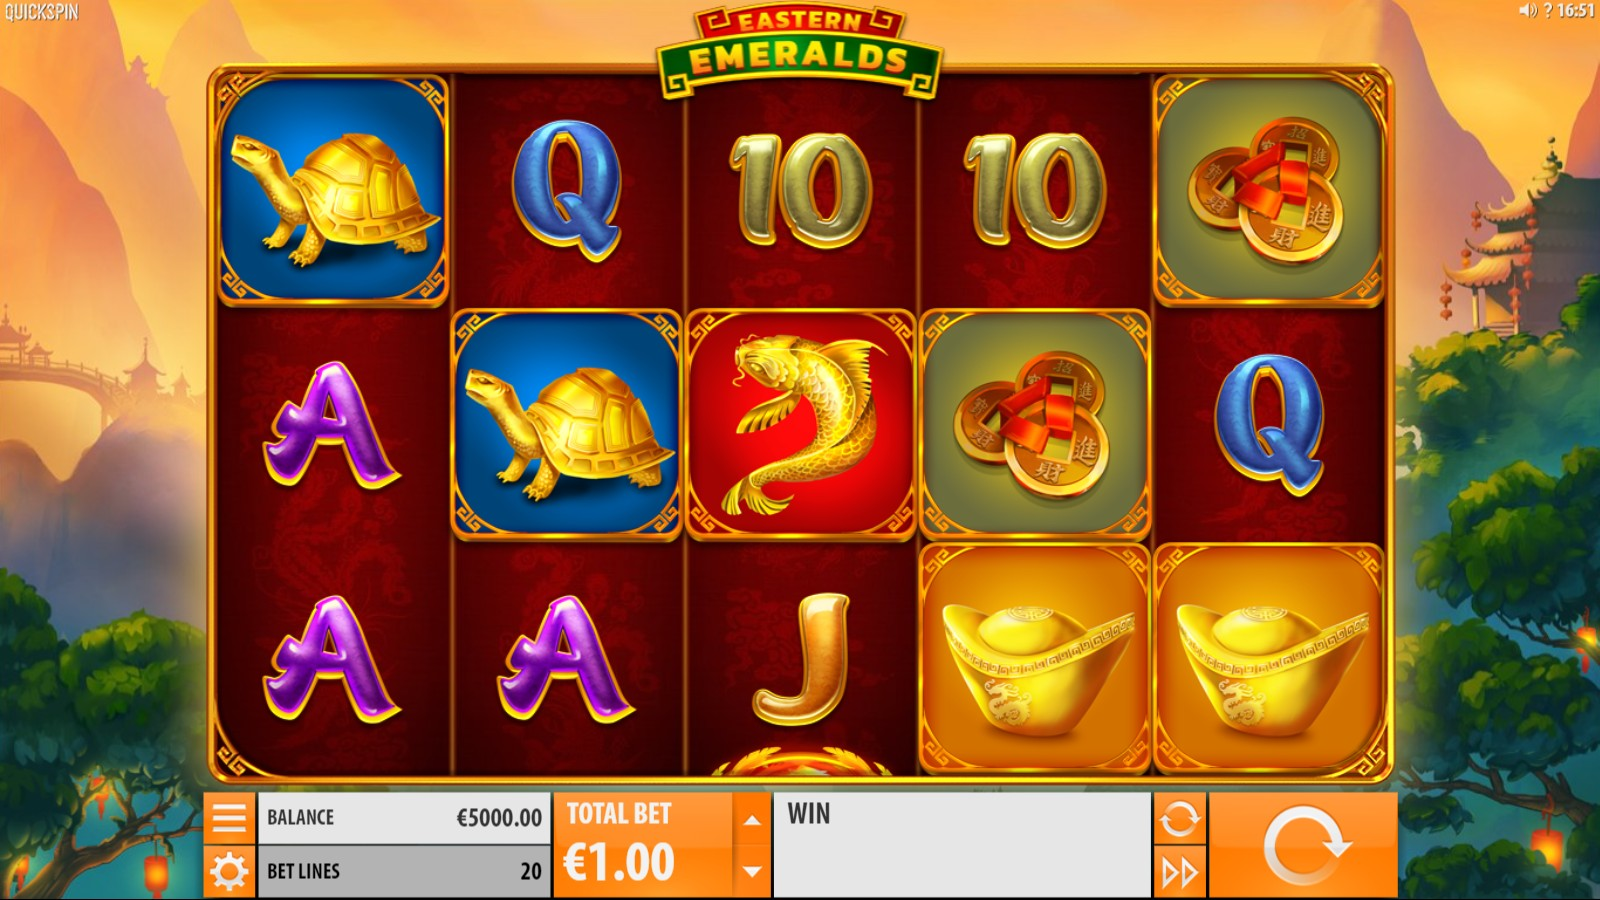 Eastern Emeralds Slot Game Symbols and Winning Combinations